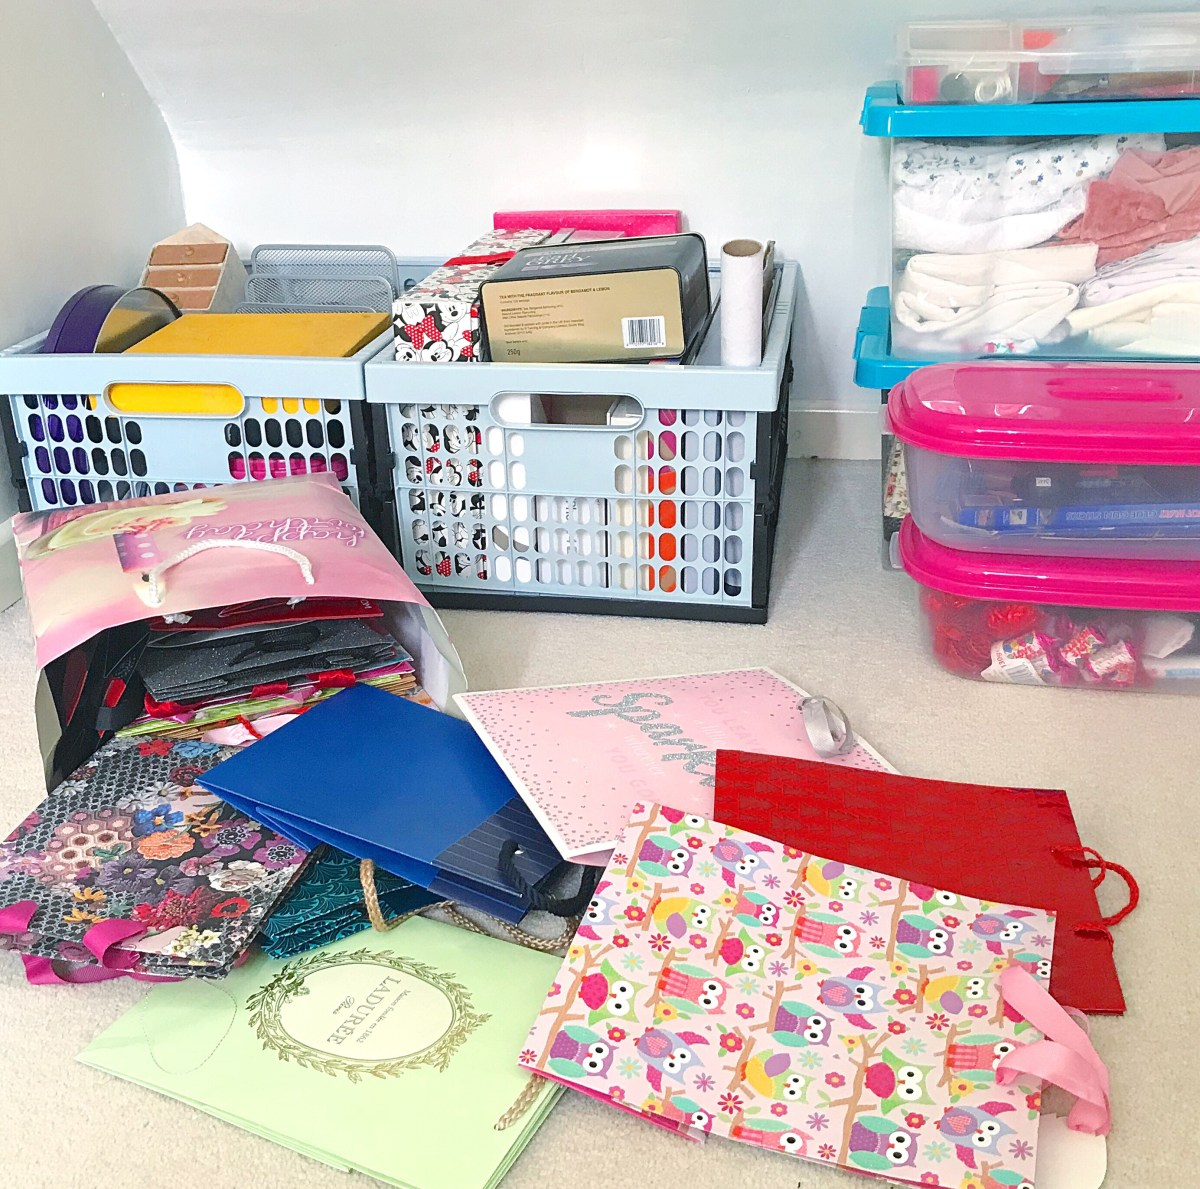 Collapsible crates, plastic fabric boxes and gift bags